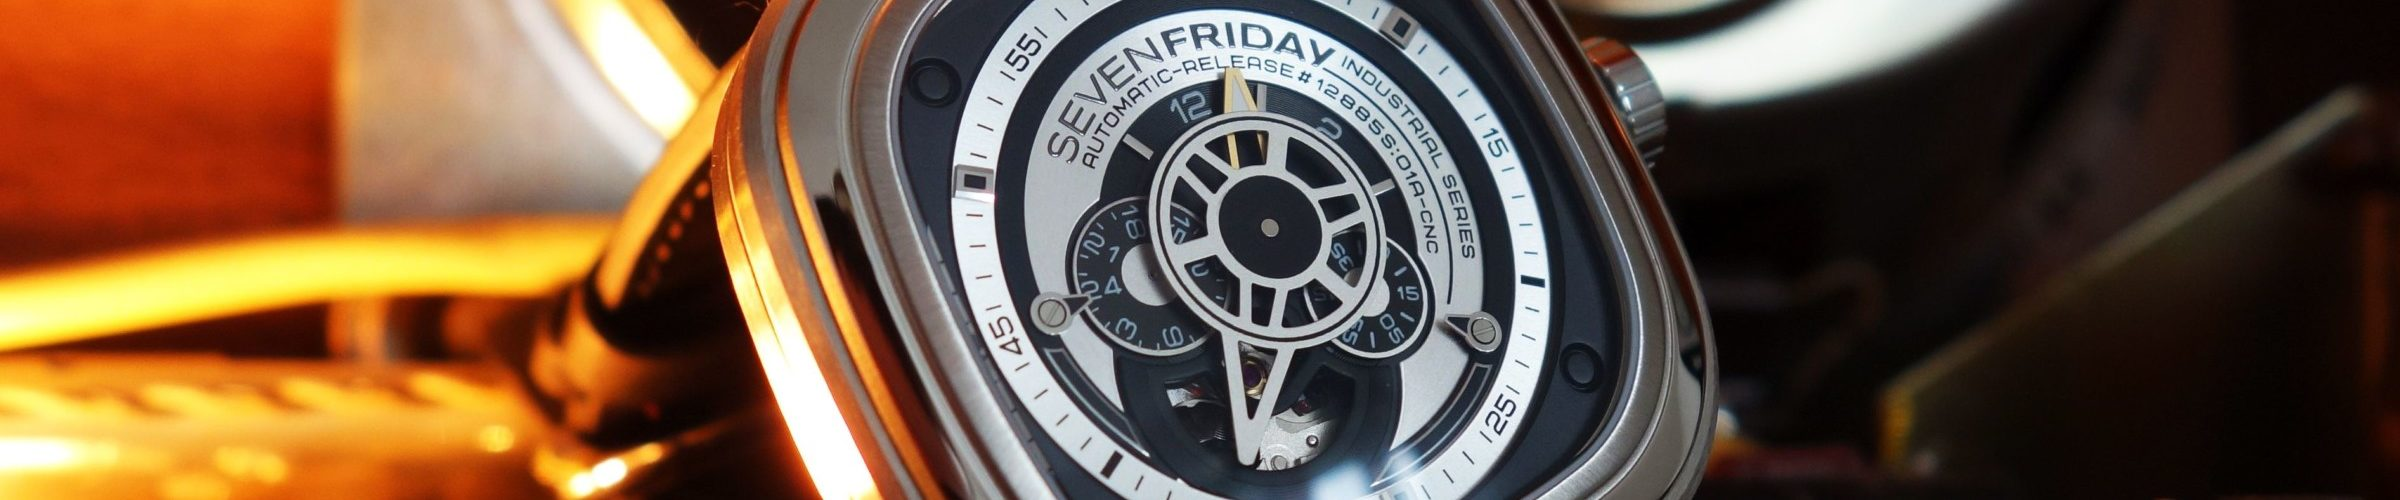 sevenfriday sf p1b 01 im test industrie look fernab des mainstreams chrononautix. Black Bedroom Furniture Sets. Home Design Ideas